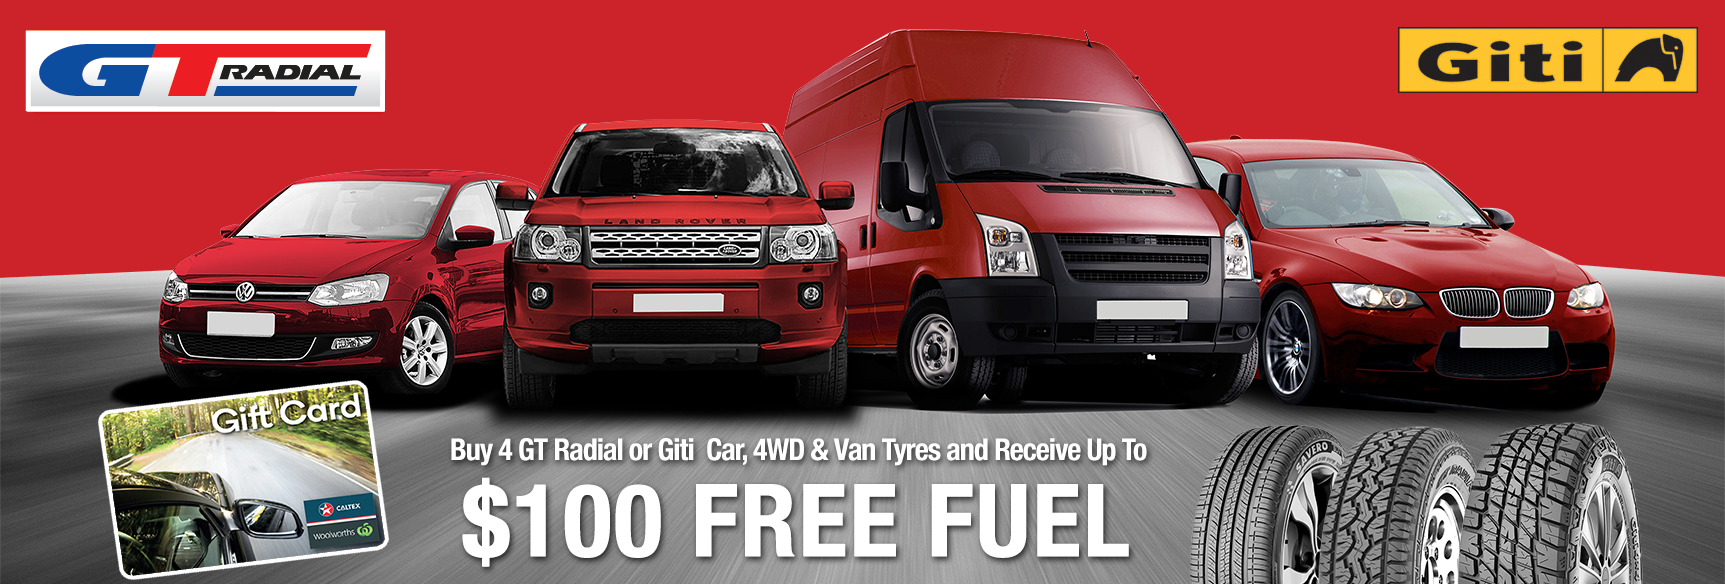 Buy 4 GT Radial or Giti Tyres and Receive Up To $100 Free Fuel